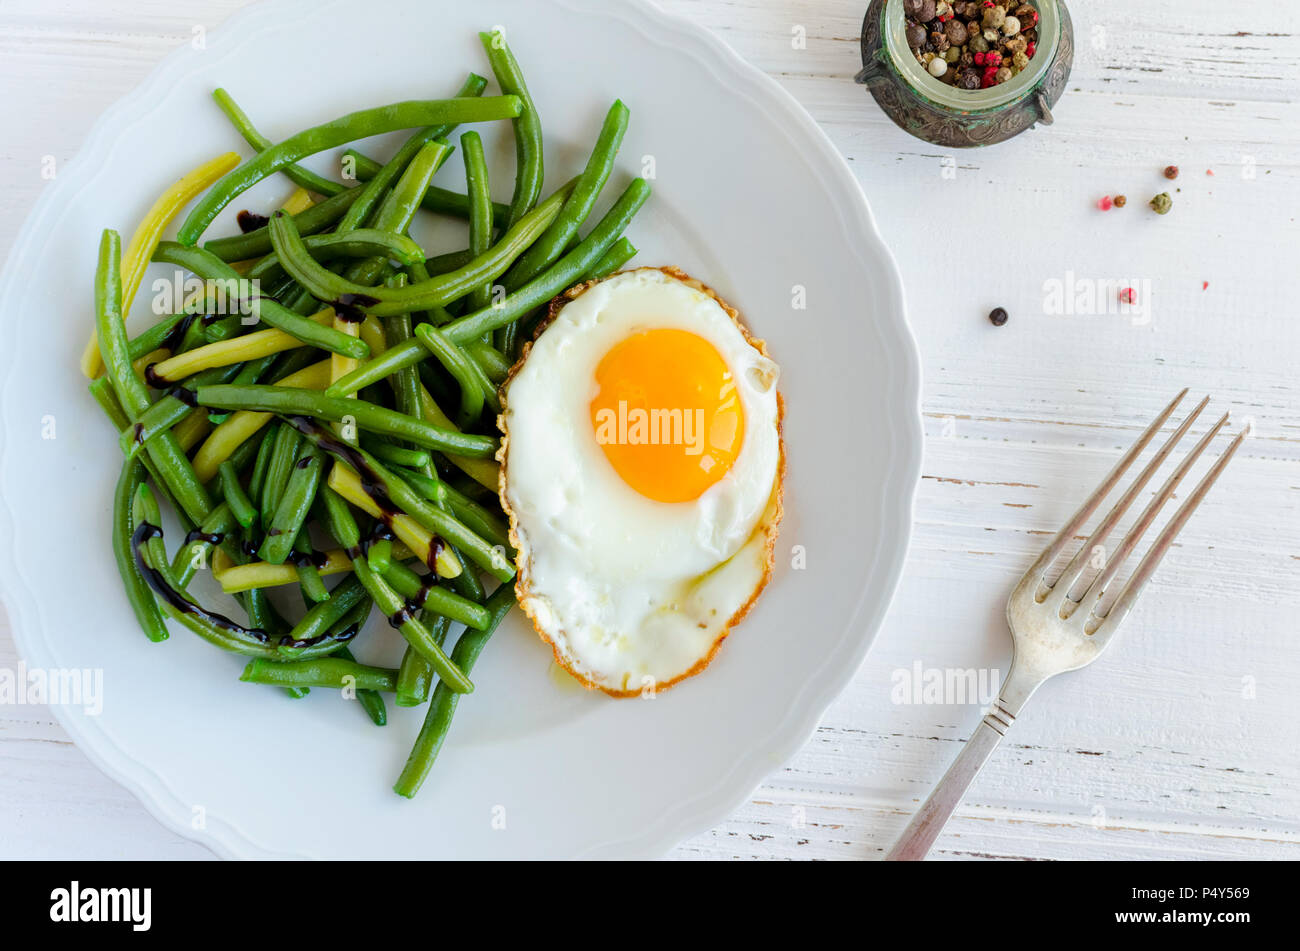 Cooked green beans with sauce balsamico glassa and fried egg in white plate on wooden background with fork. Healthy vegetarian food concept. Top view. - Stock Image